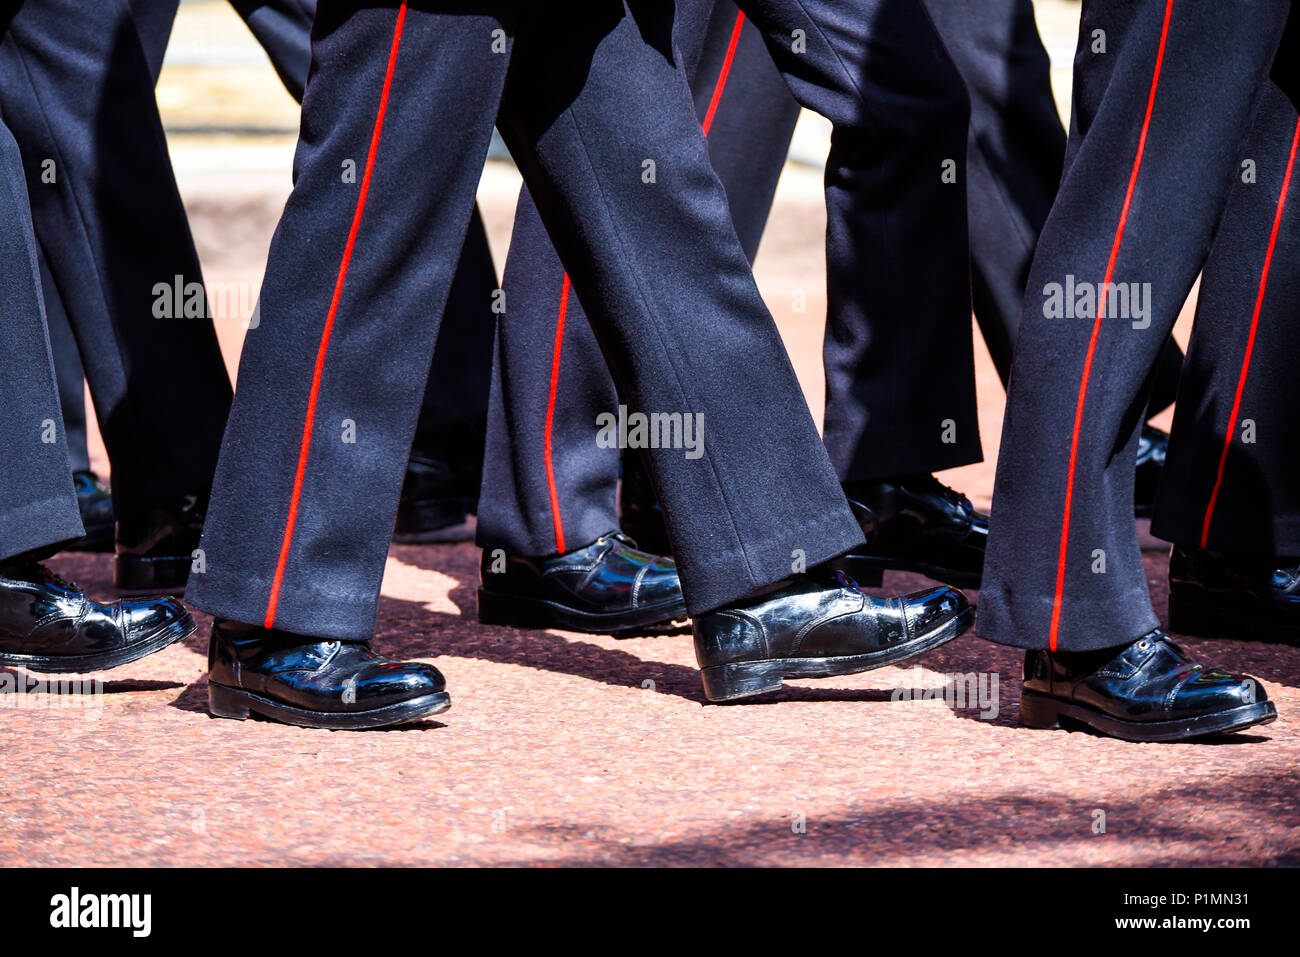 Marching legs. Trooping the Colour 2018. British Army Coldstream Guards marching legs and polished boots. On red surface of The Mall, London, UK - Stock Image